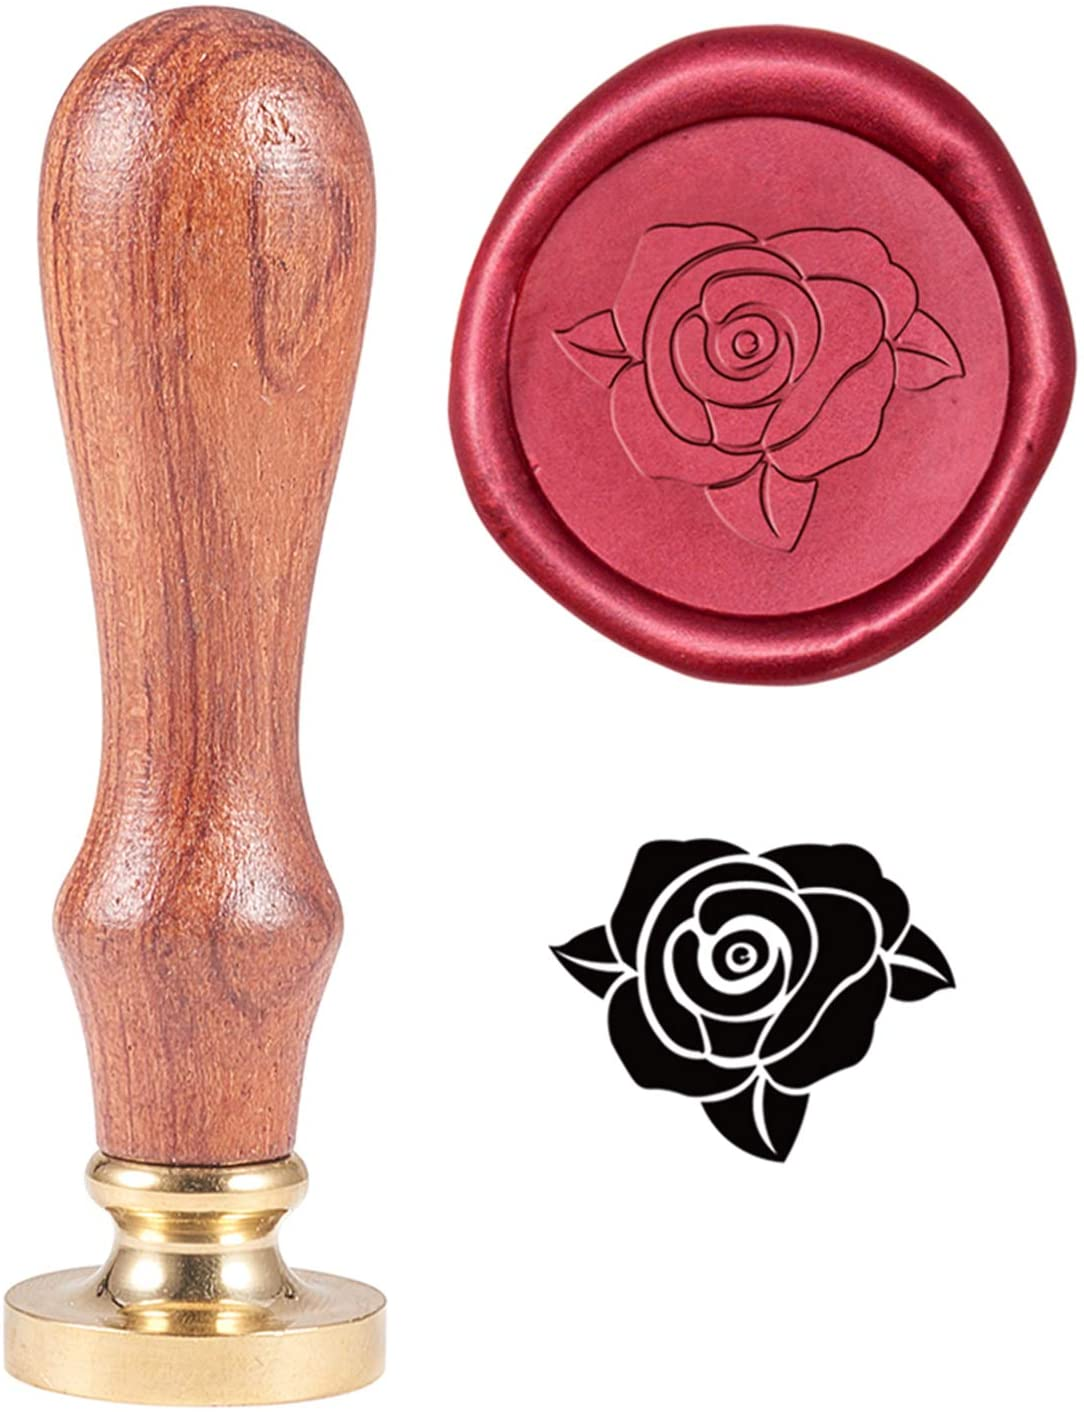 PH PandaHall Rose Flower Wax Seal Stamp Vintage Retro Flower Sealing Stamp for Valentine's Day Embellishment of Envelopes, Invitations, Gift Packing, Wine Package